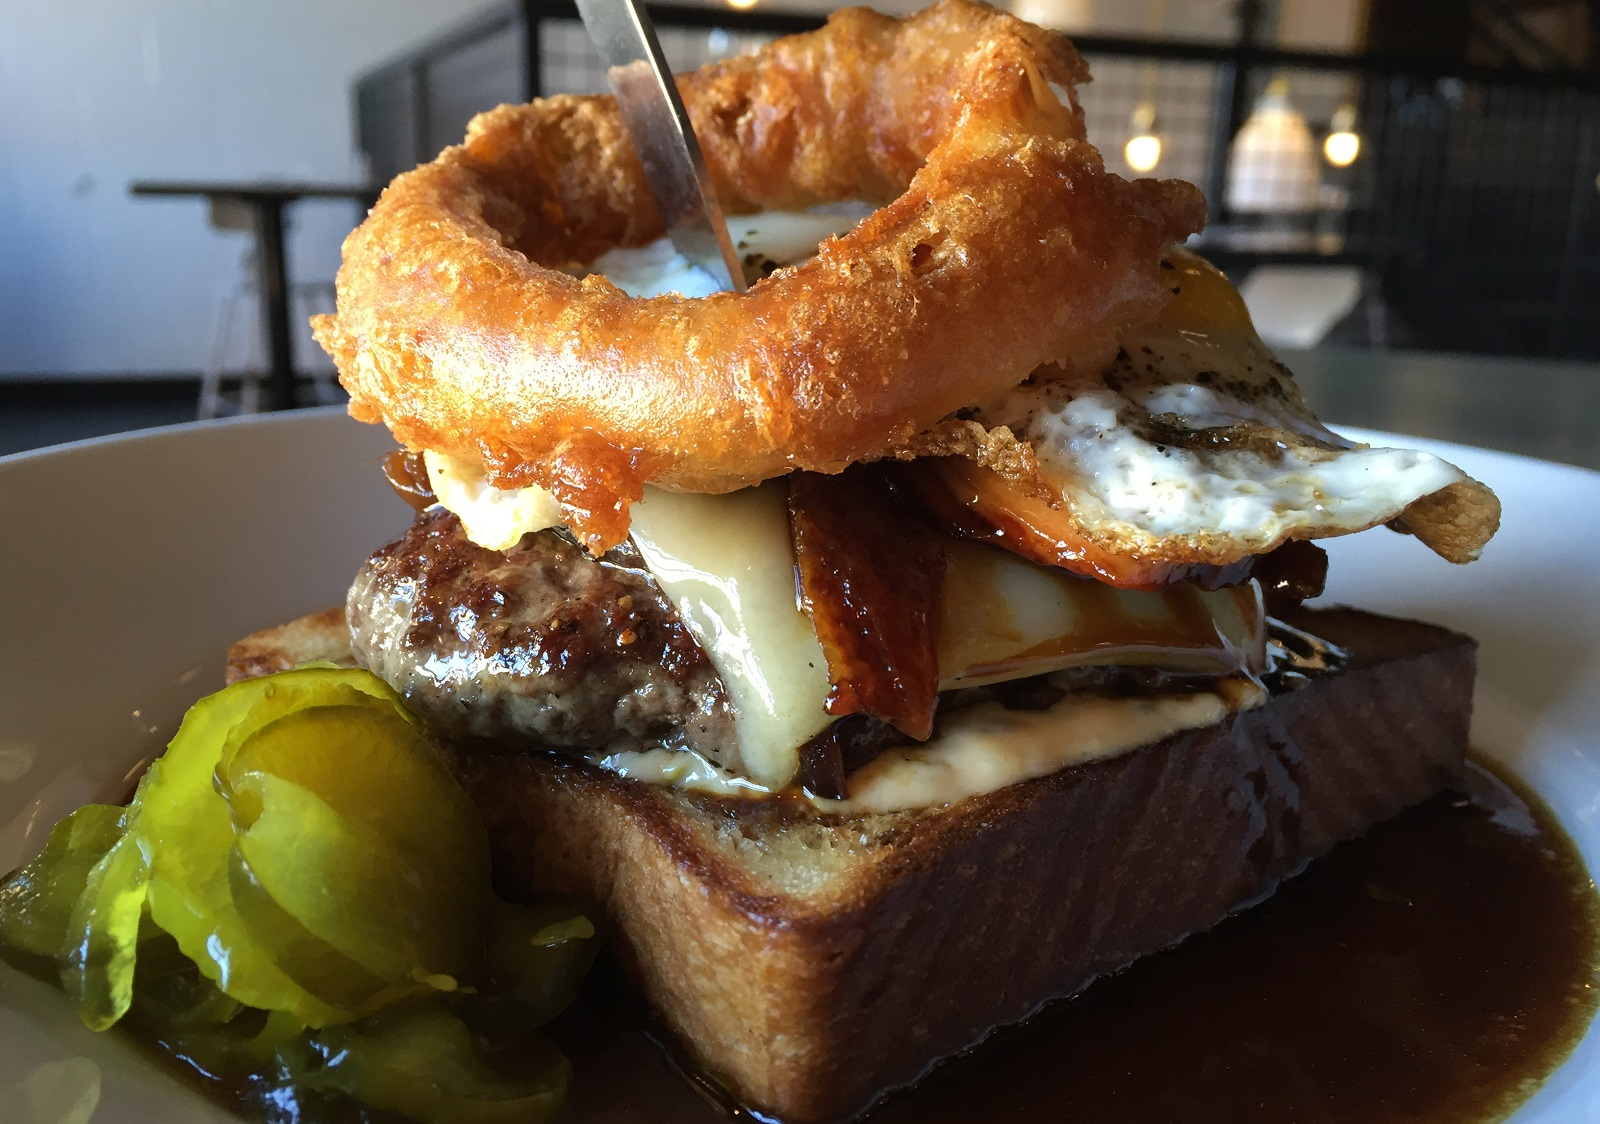 This open-faced, bone marrow burger comes piled with glazed pork belly, gruyere cheese, spicy remoulade, caramelized onions, fried egg, and an onion ring, for good measure. A thick slice of brioche serves as its indulgent foundation. (Caitlin Hartney/Special to The News)